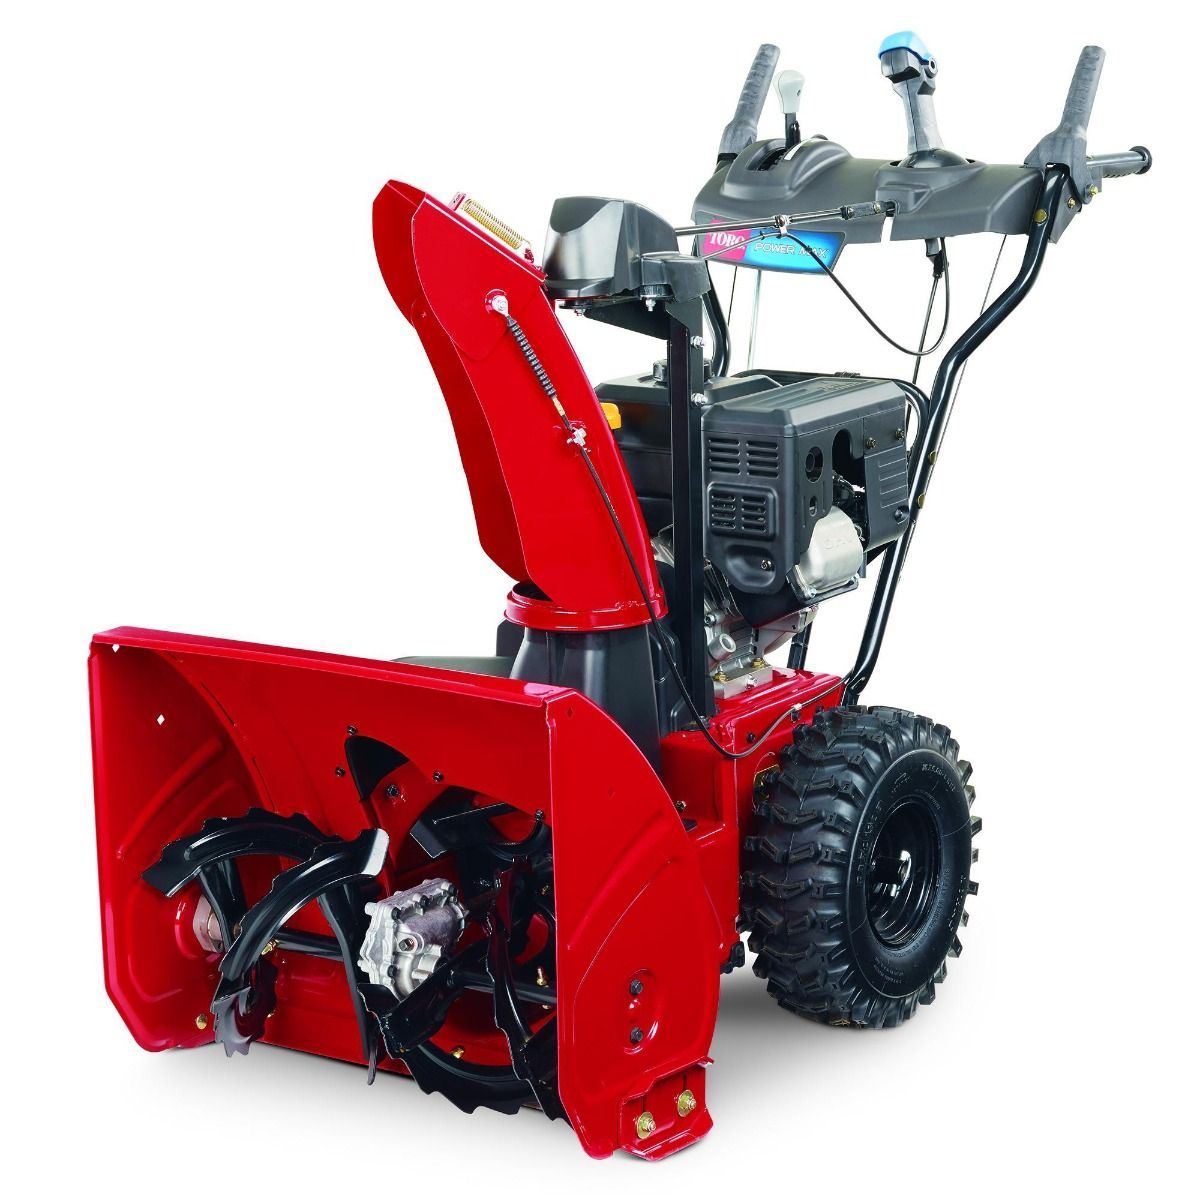 Toro 37798 Power Max 824OE Electric Start Snowblower